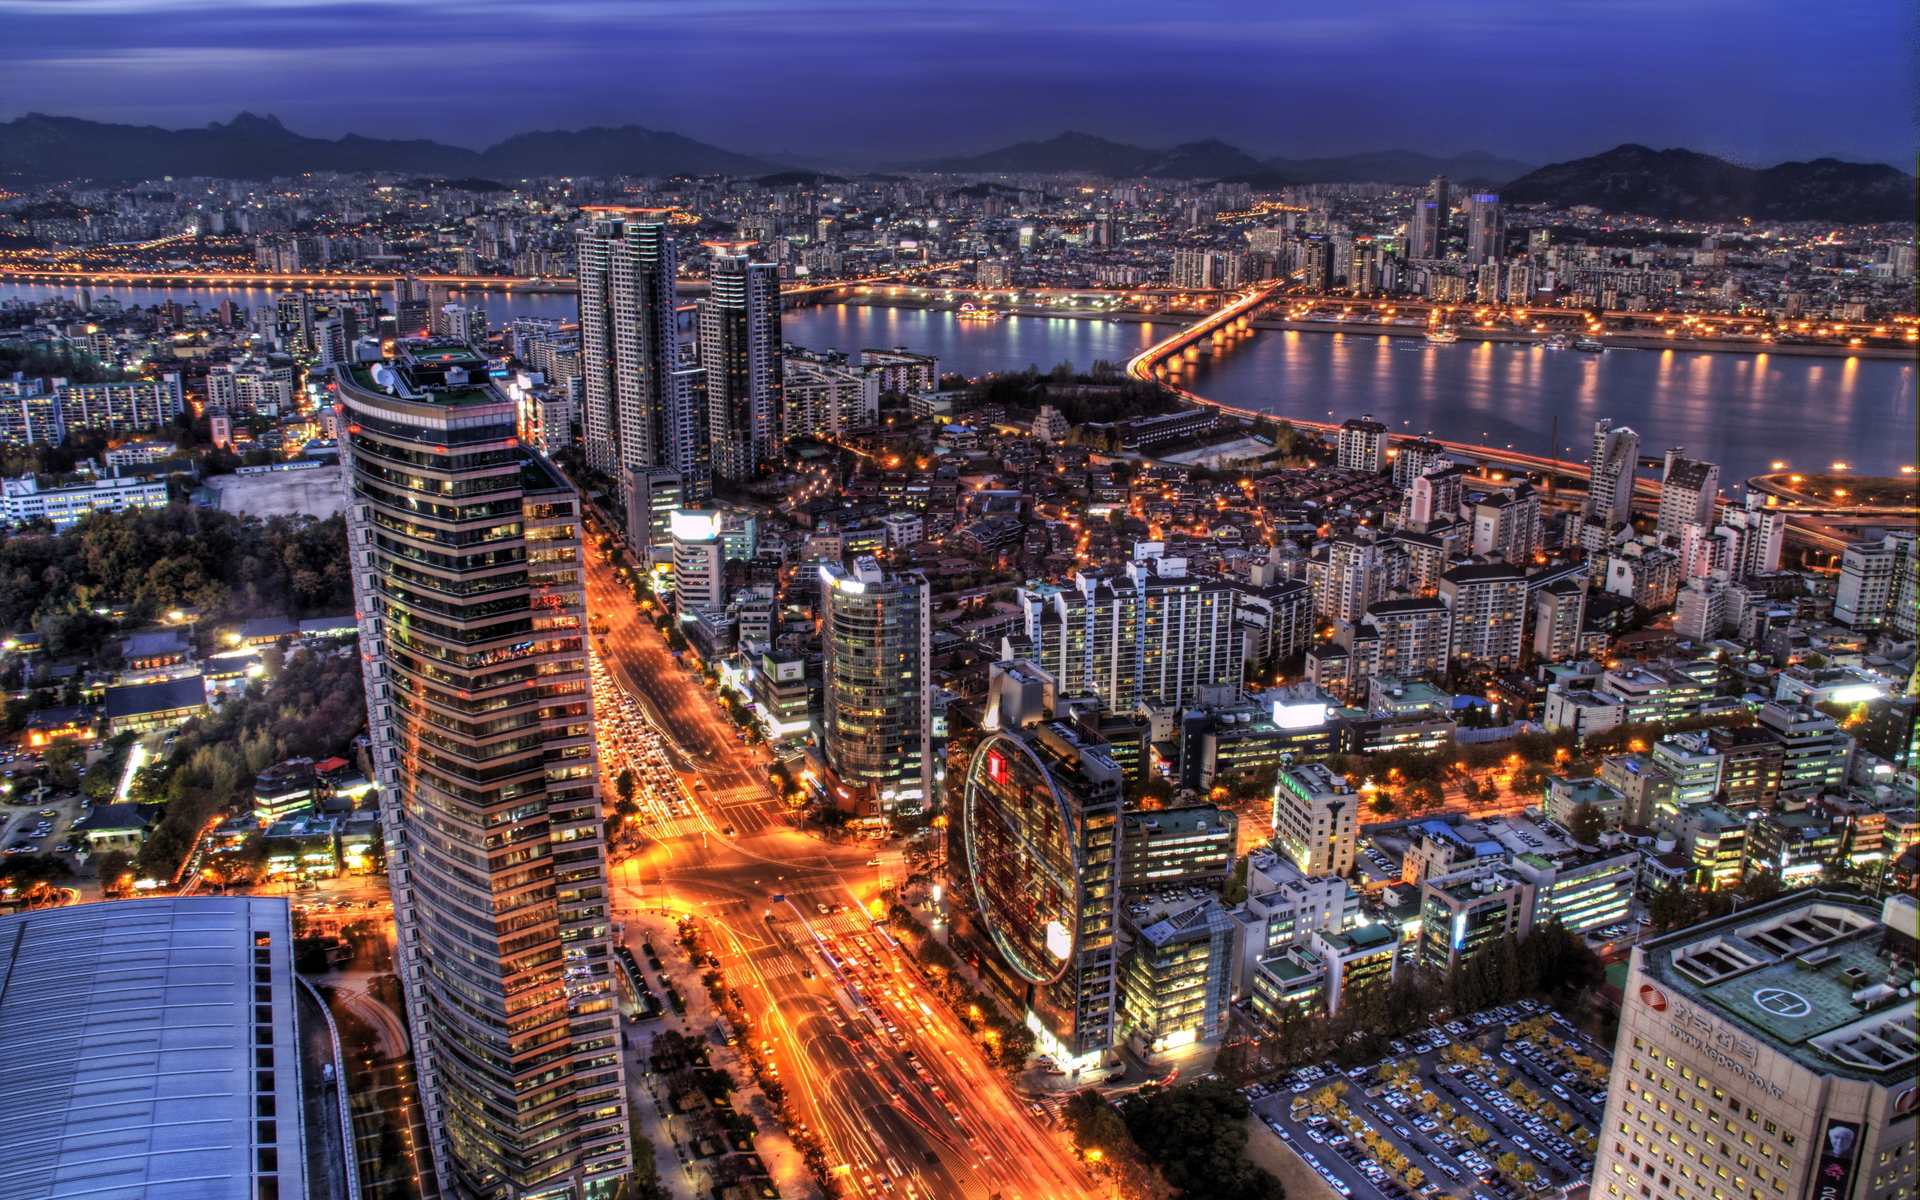 seoul images seoul night hd wallpaper and background photos (37135614)